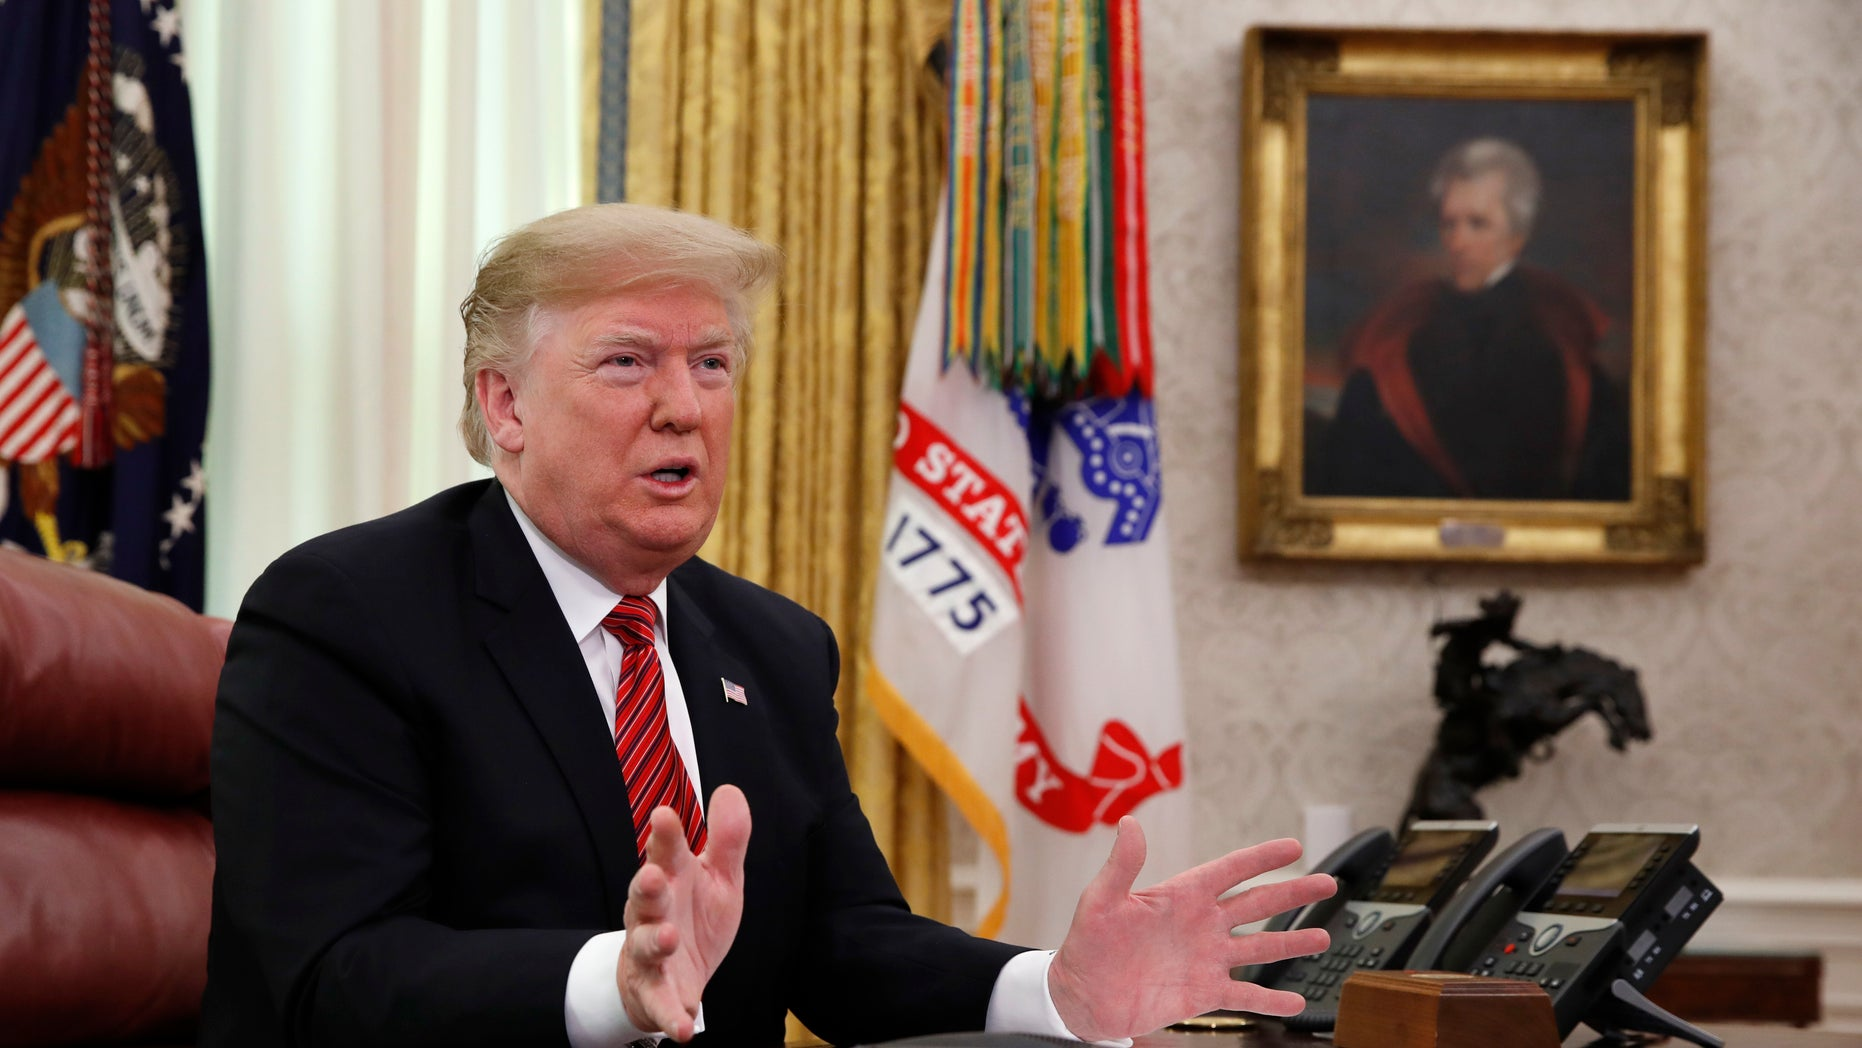 President Trump greets members of the five branches of the military by video conference on Christmas Day. (Associated Press)